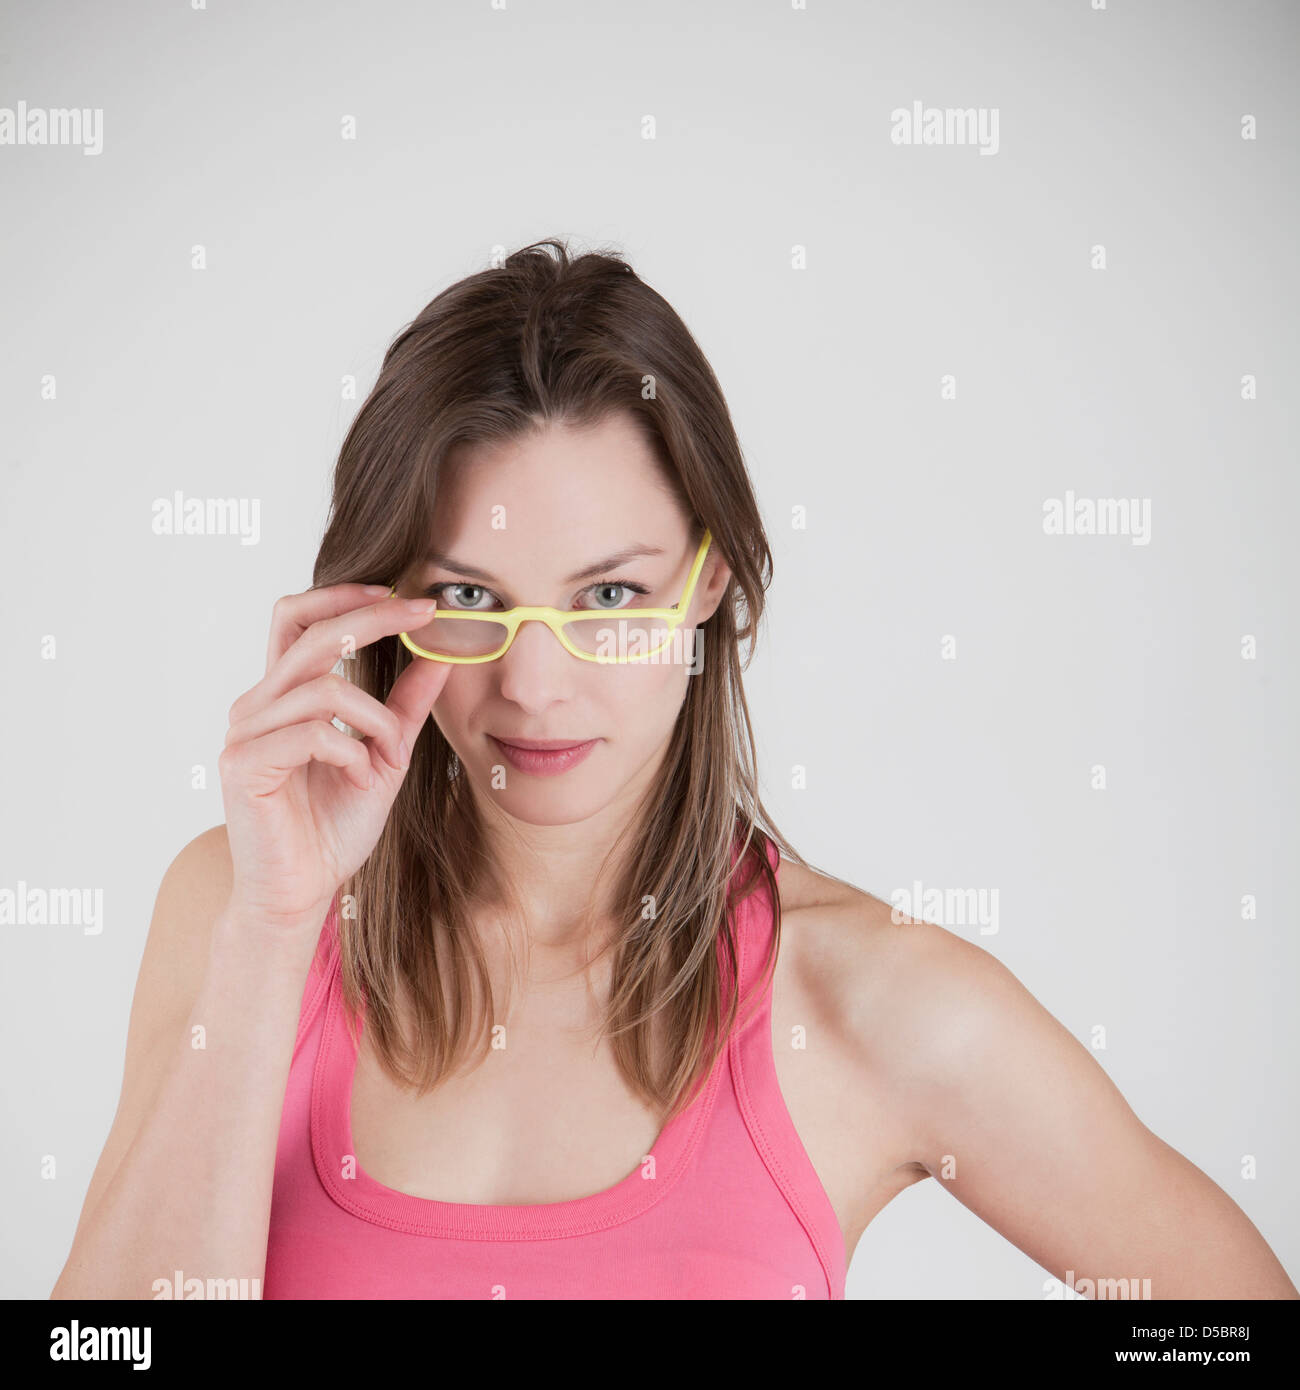 woman with spectacles - Stock Image